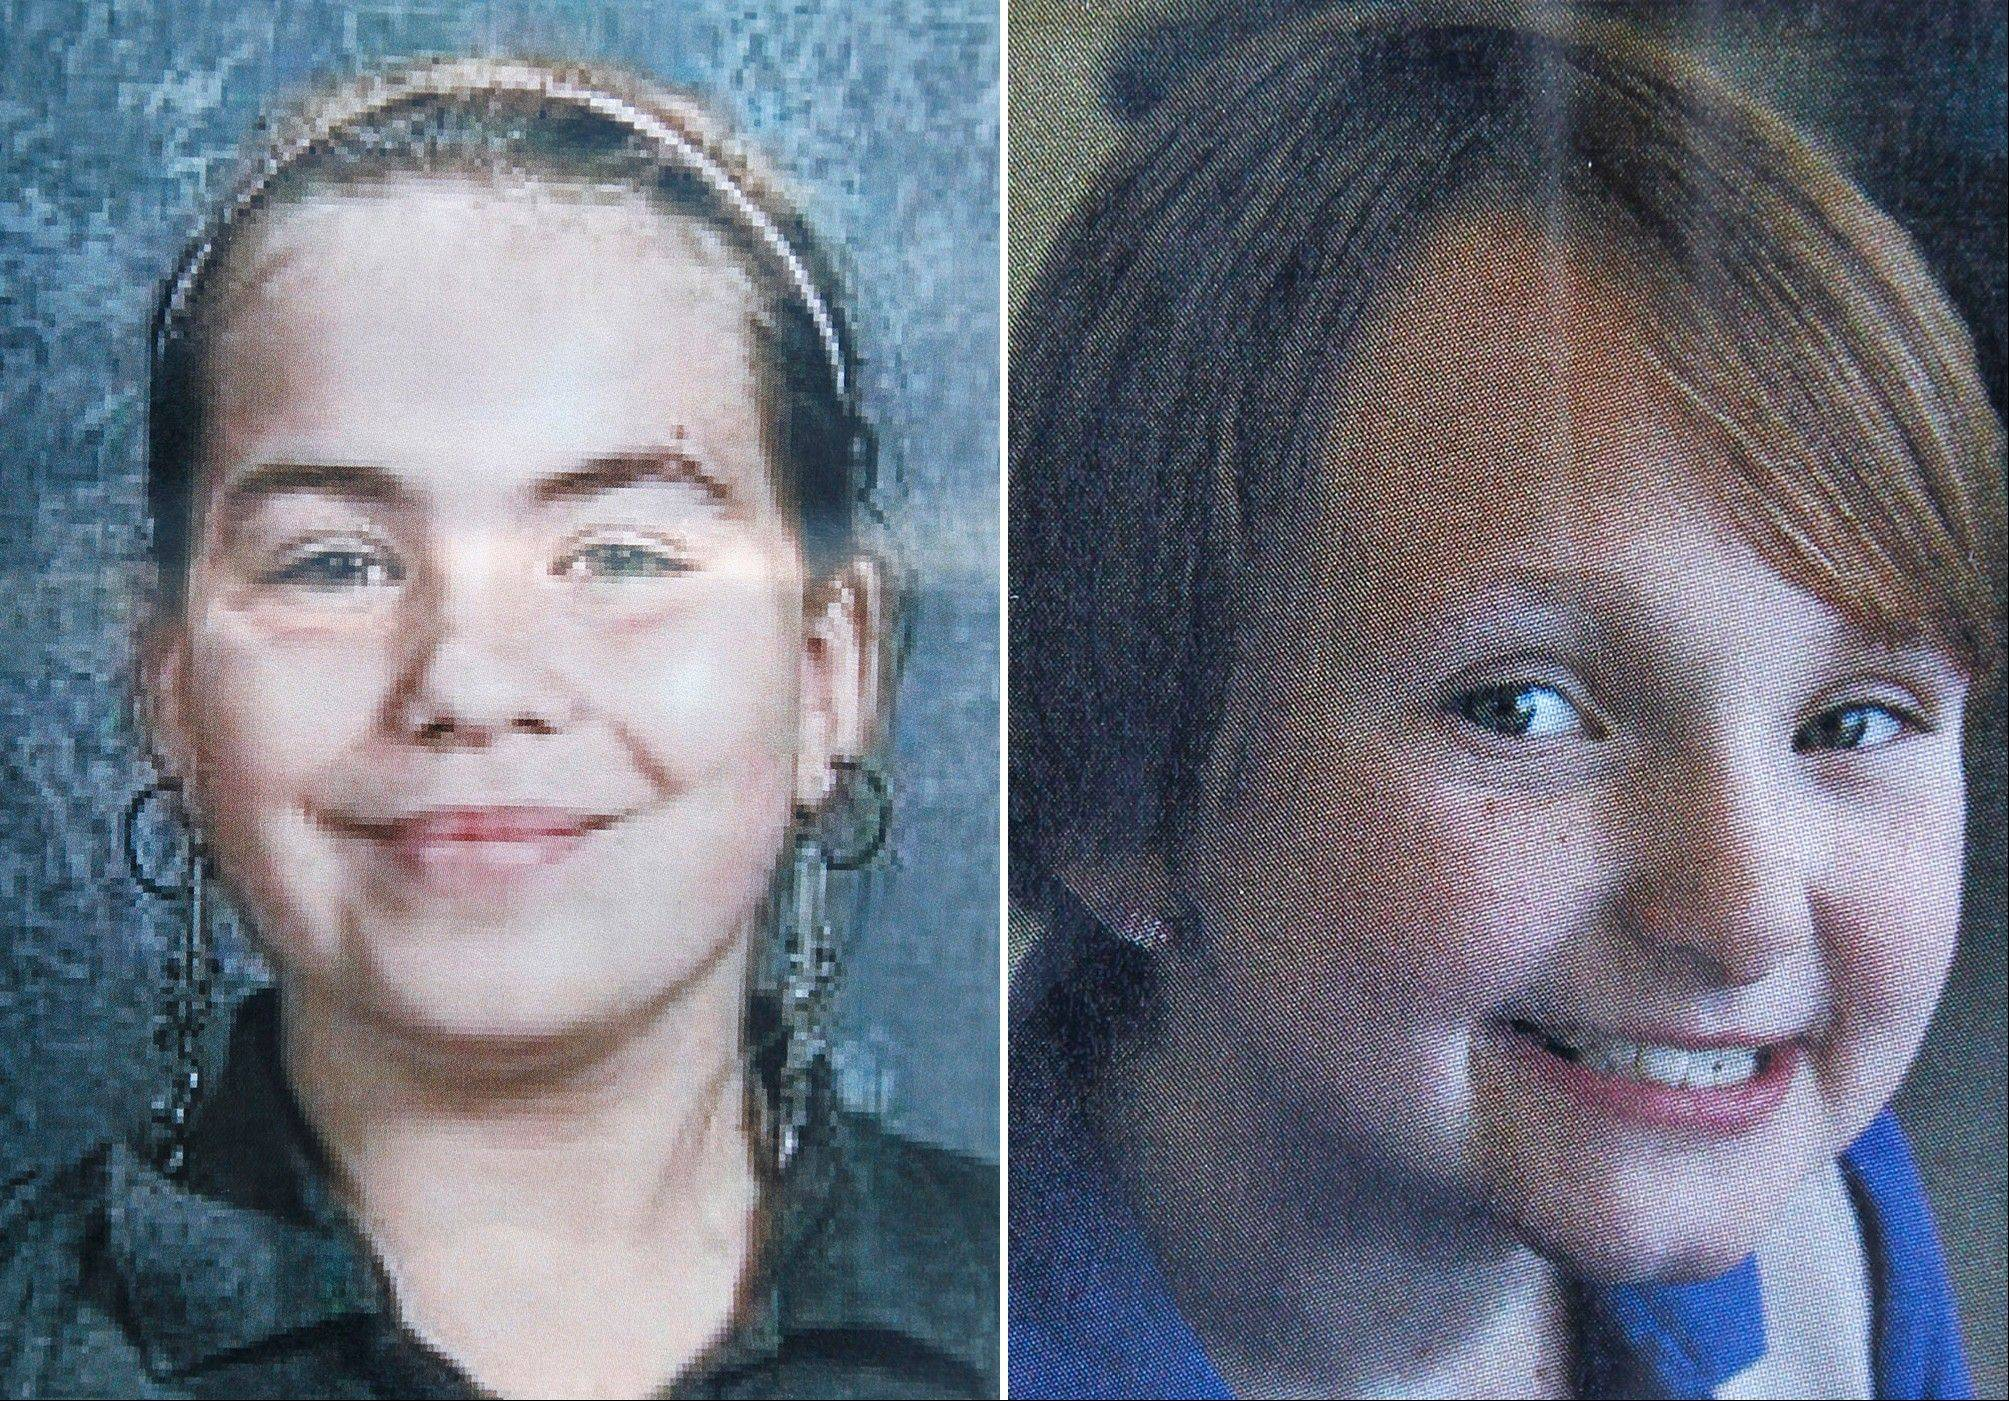 Cousins Lyric Cook-Morrissey, 10, left, and Elizabeth Collins, 8, have been missing since Friday afternoon, July 13, 2012. The girls were last seen Friday afternoon leaving their grandmother's house in northeastern Iowa.